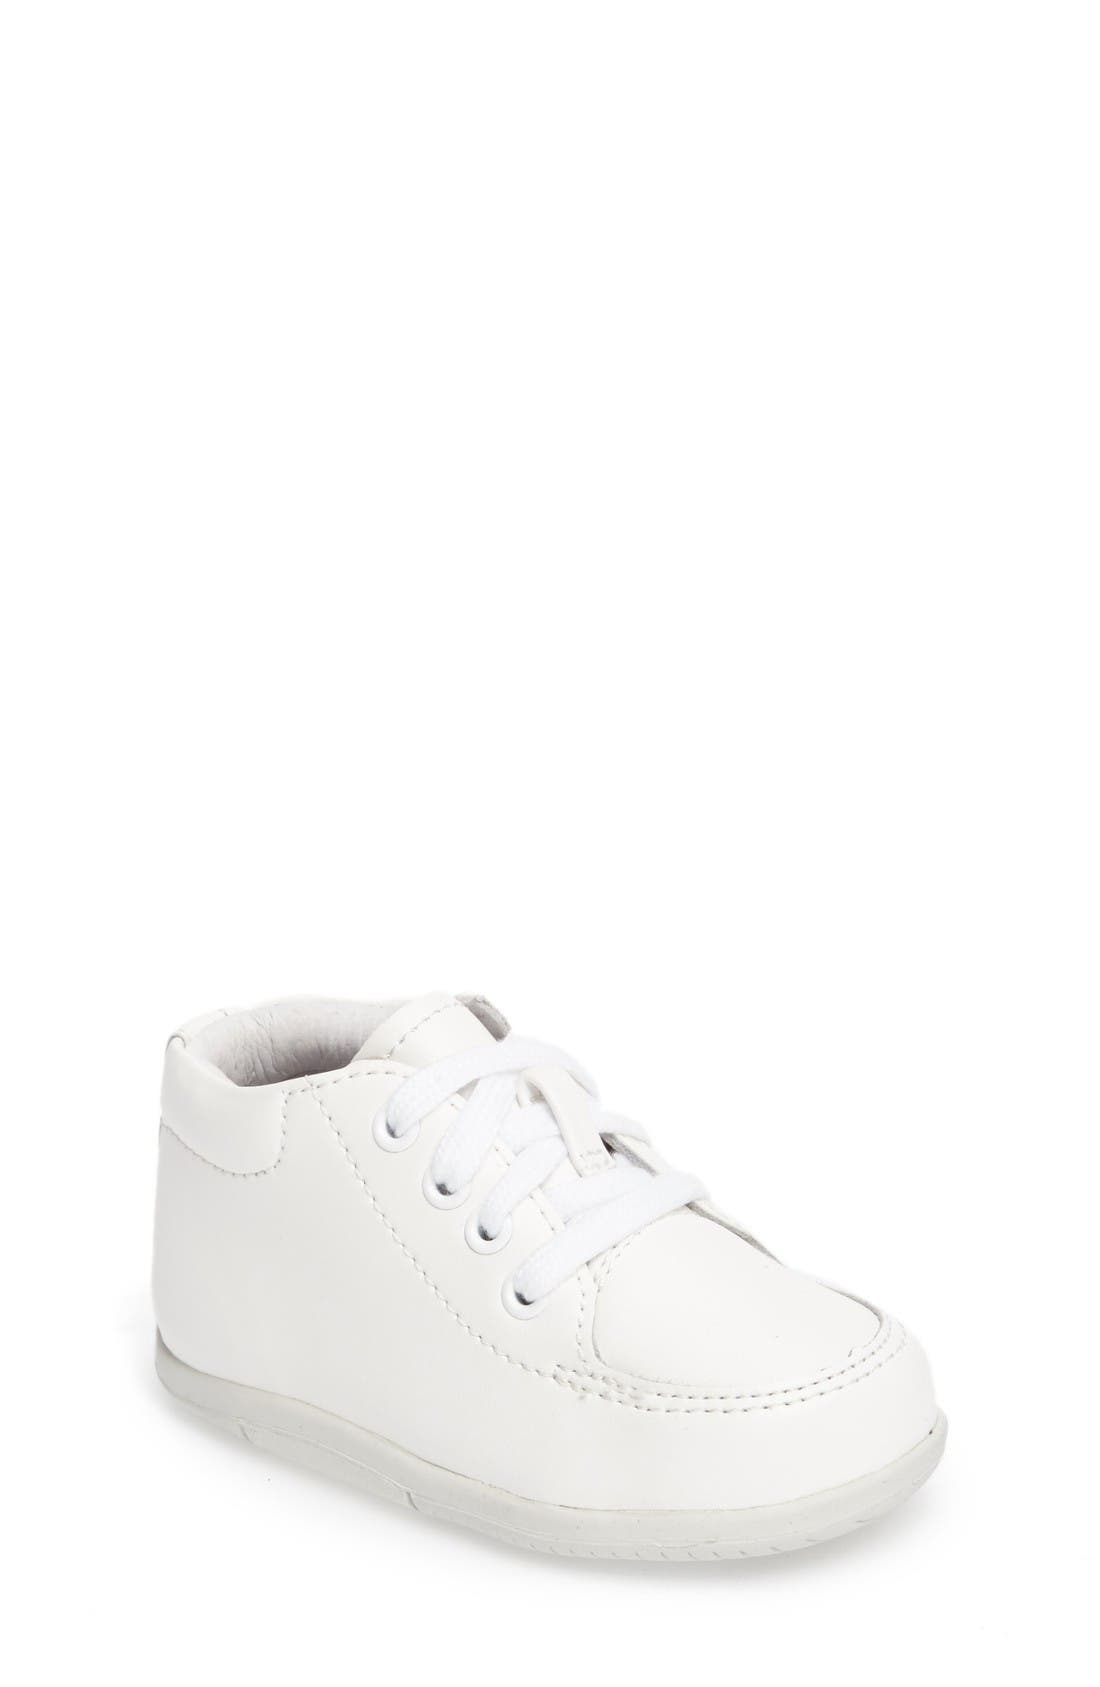 Grayson Sneaker,                         Main,                         color, White